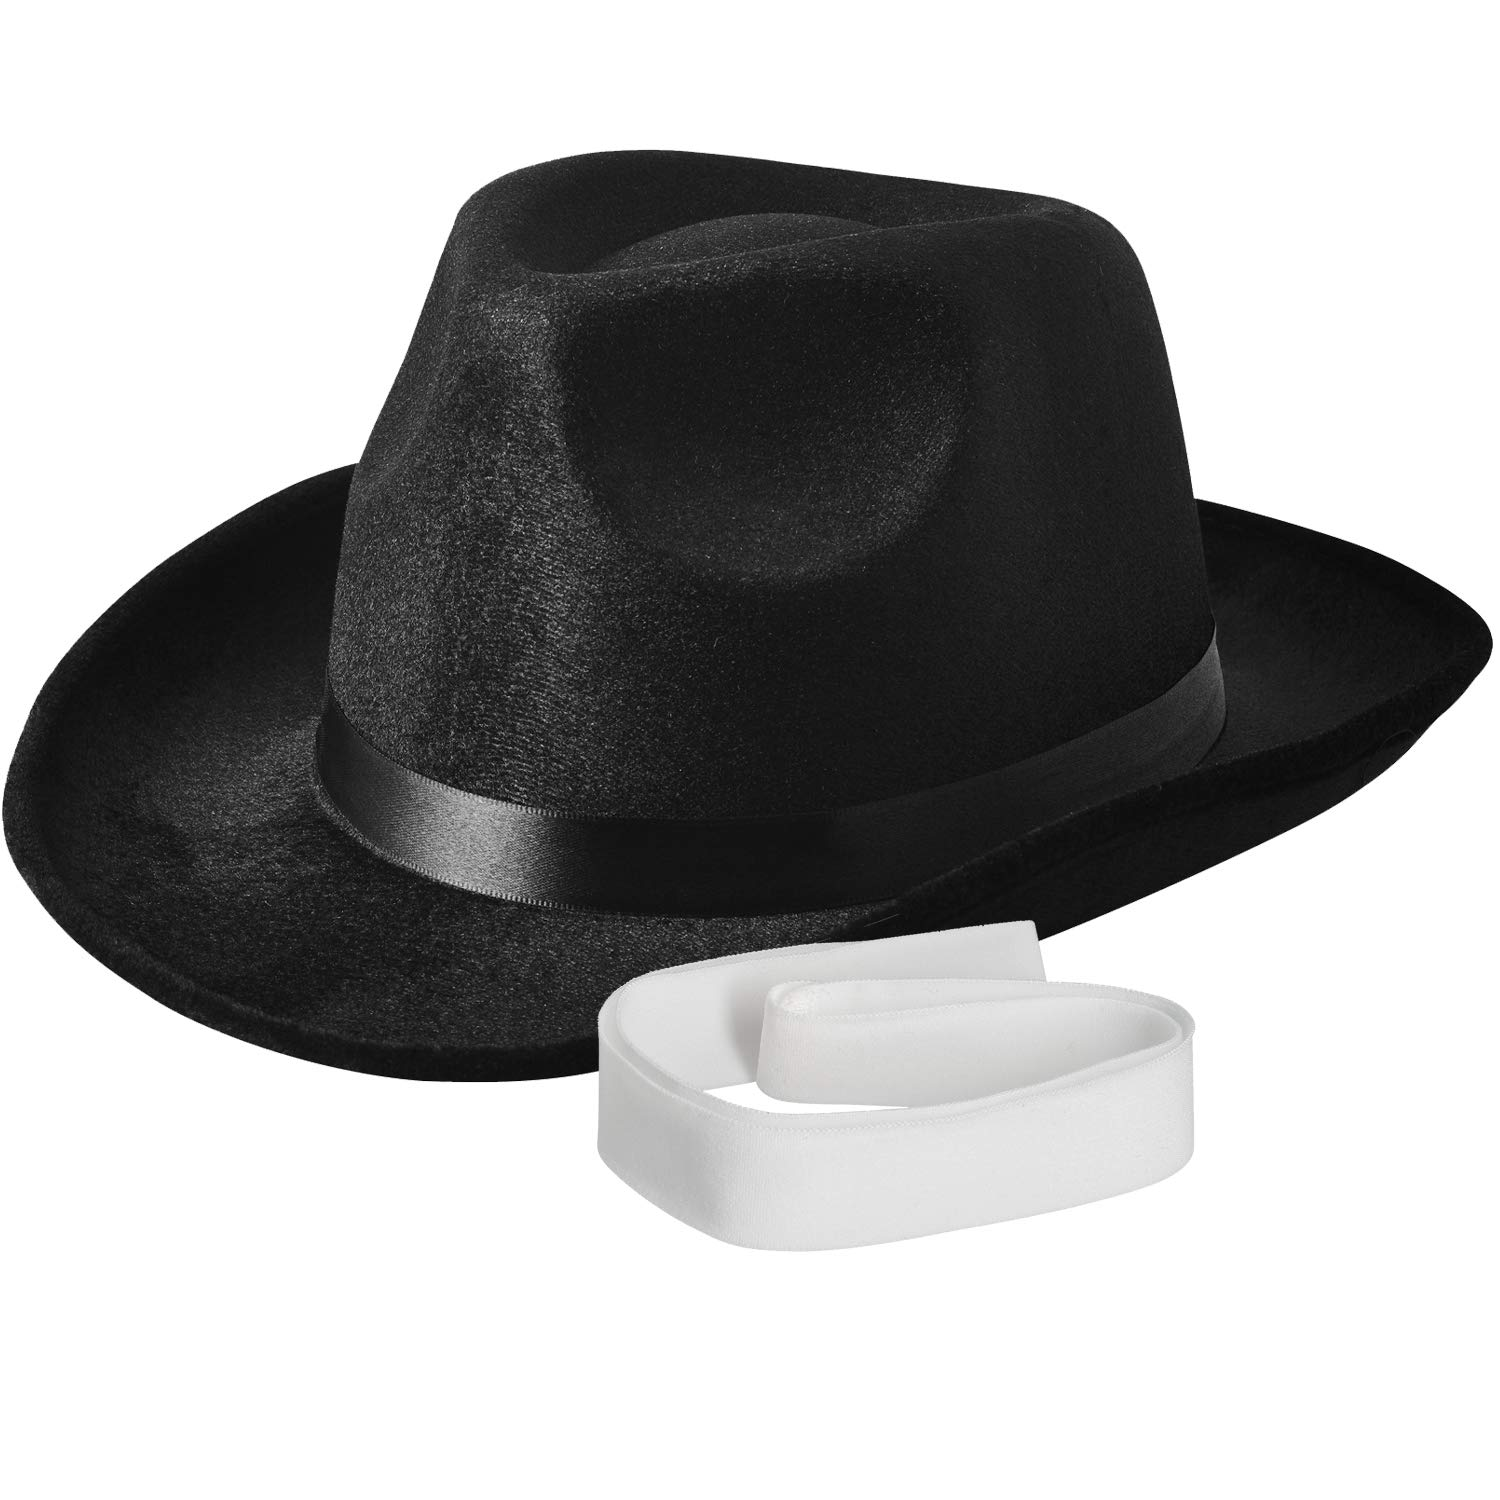 46dc428638053 Amazon.com: NJ Novelty - Fedora Gangster Hat, Black Pinched Hat Costume  Accessory + White Band (Black - 1 Pack): Clothing